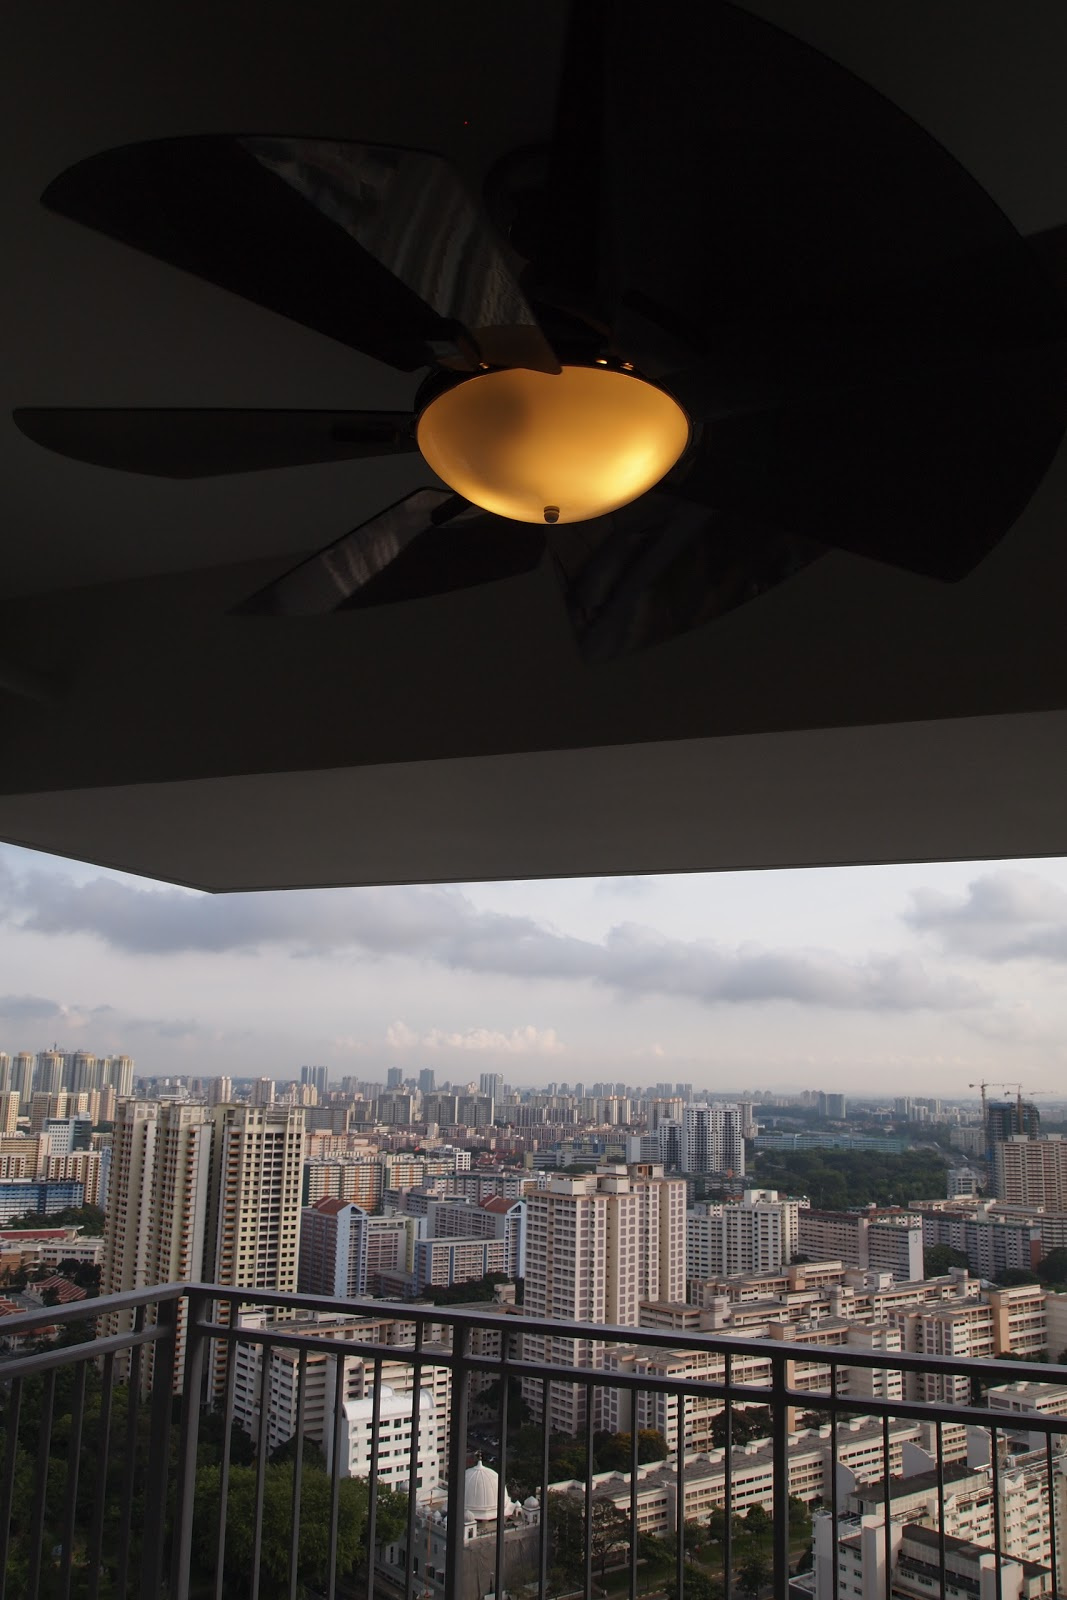 ytlsf blog » How much would it cost to install a ceiling fan into